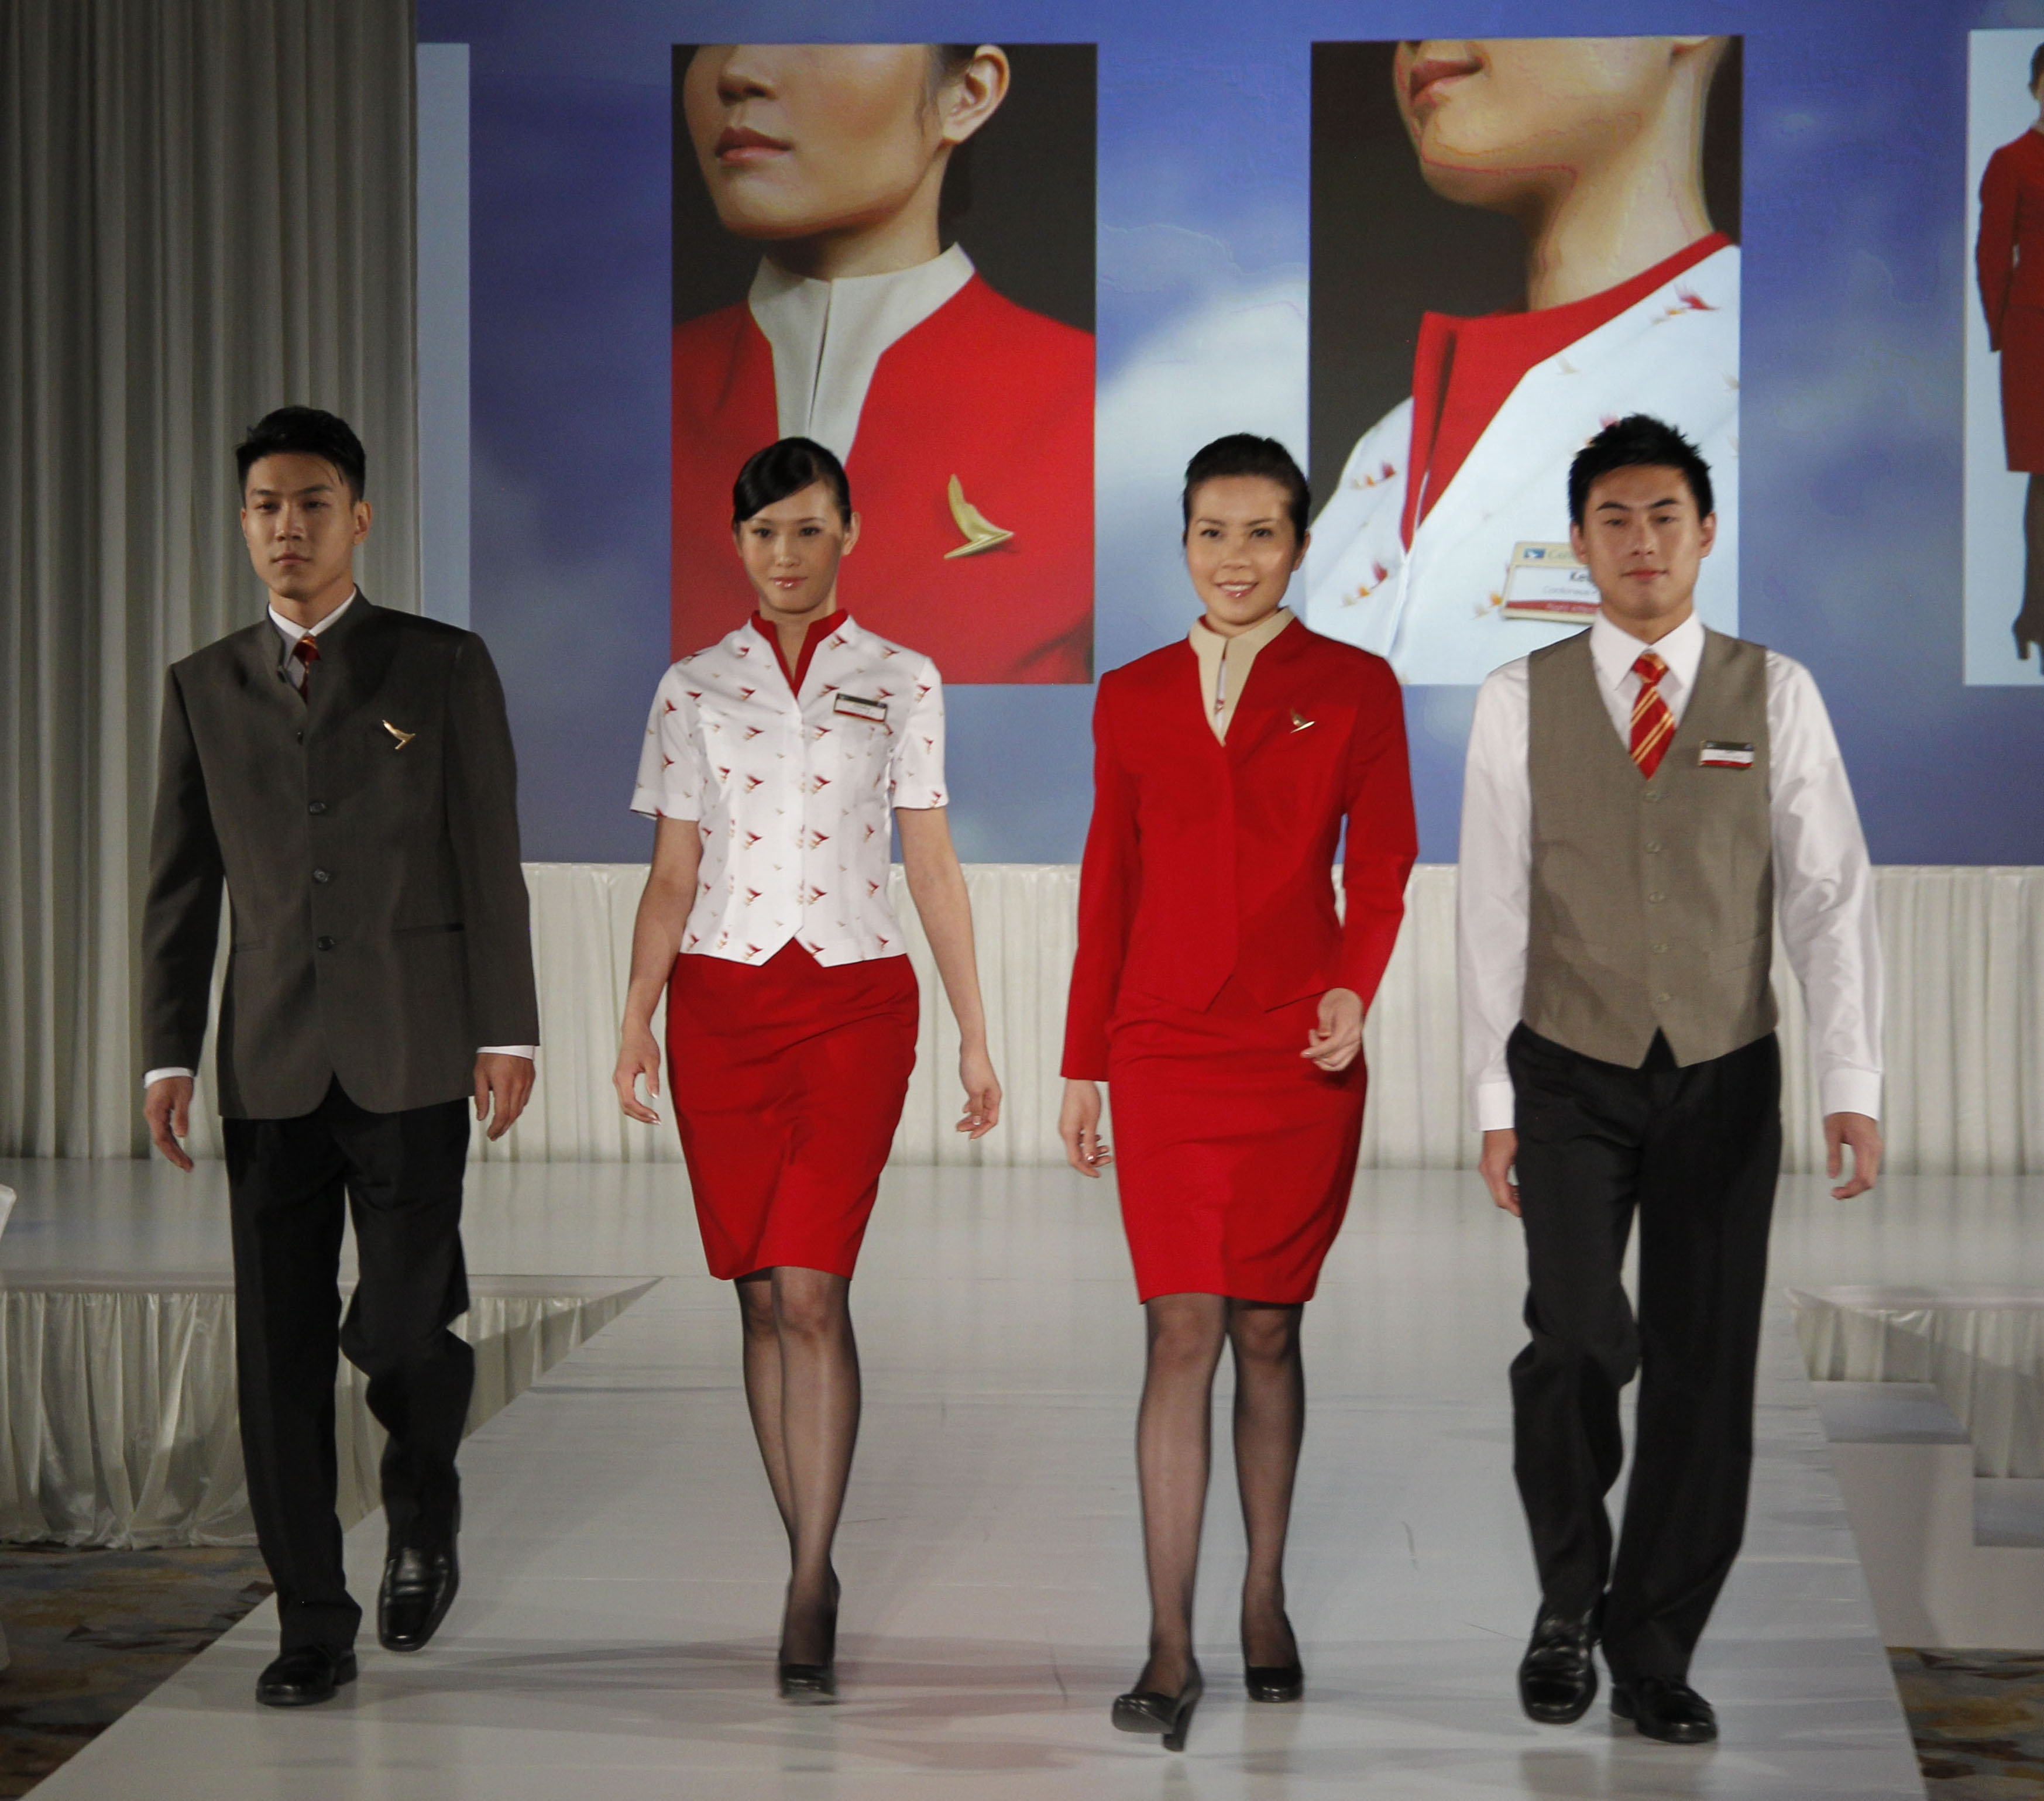 Image from Cathay Pacific